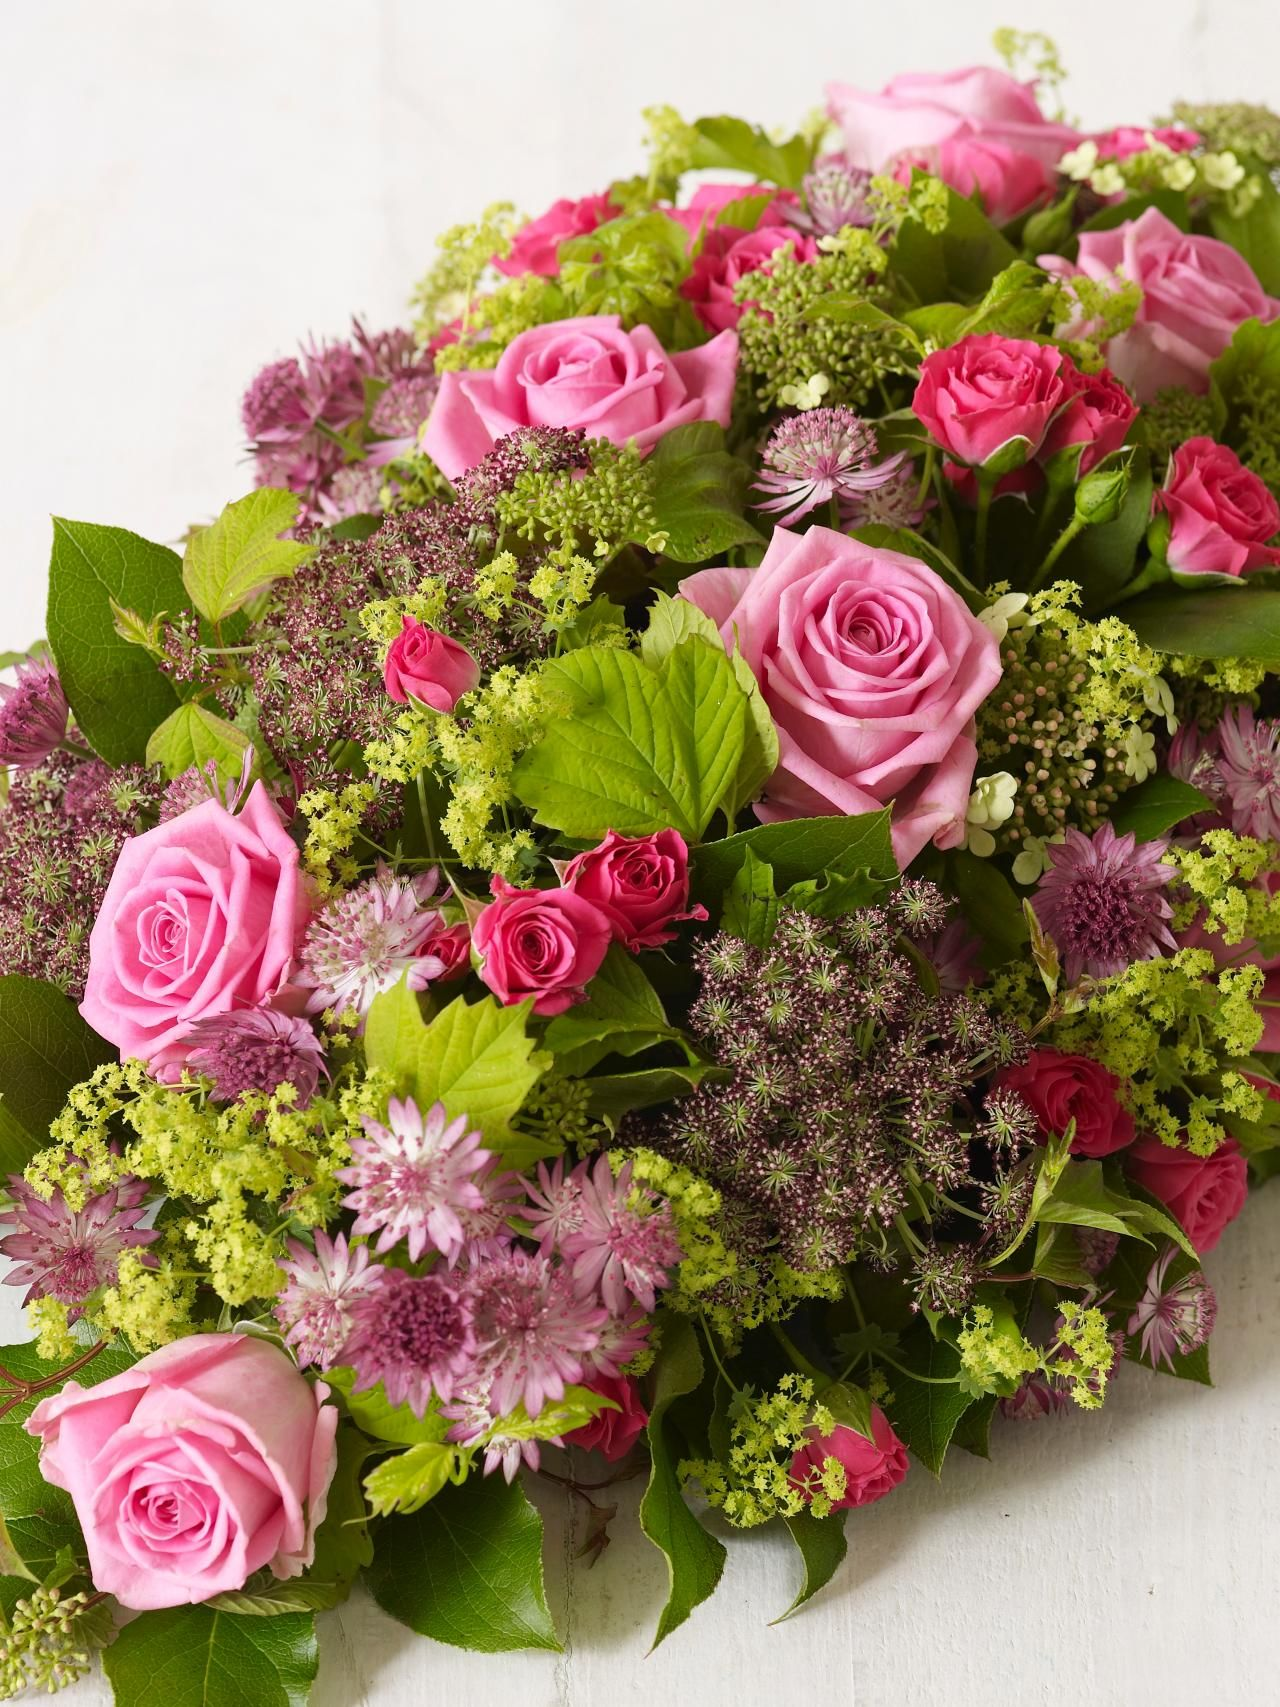 How To Arrange Flowers Flower Arranging Tips Wedding Pinterest